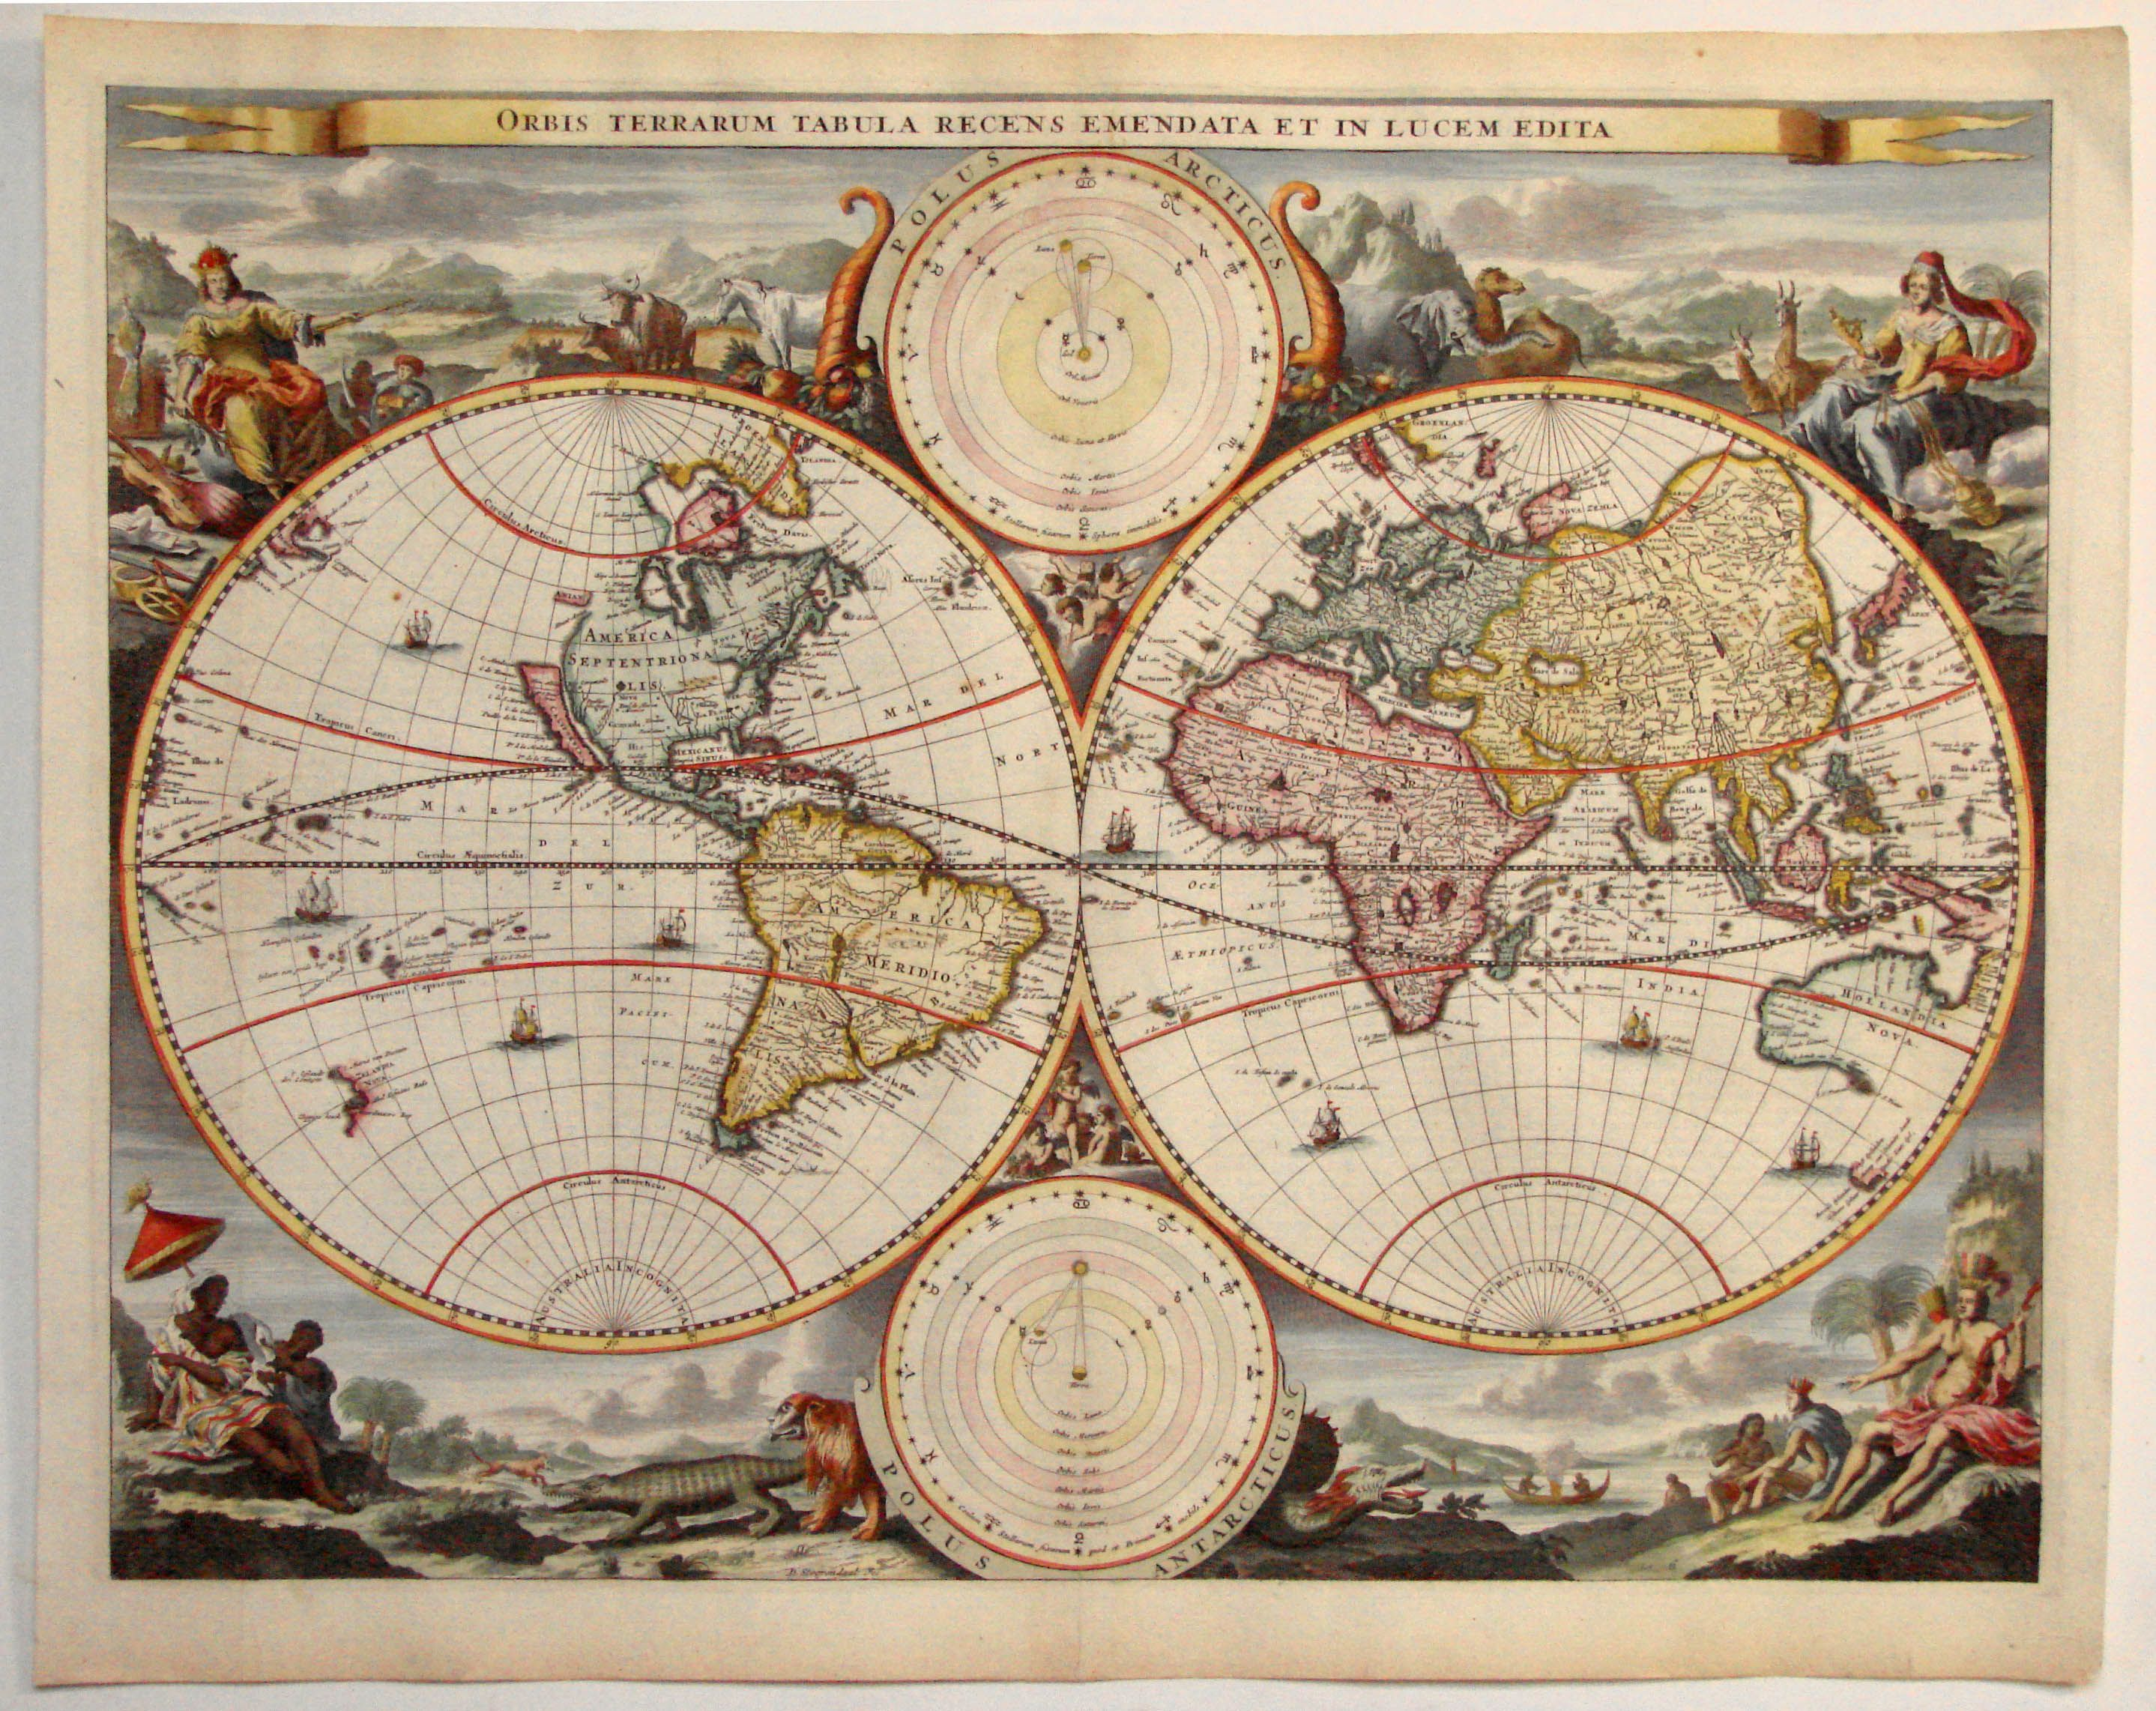 Pin by todd ross on r a n d o m p i c s f l i c k s pinterest antique map stoopendaal world gumiabroncs Image collections